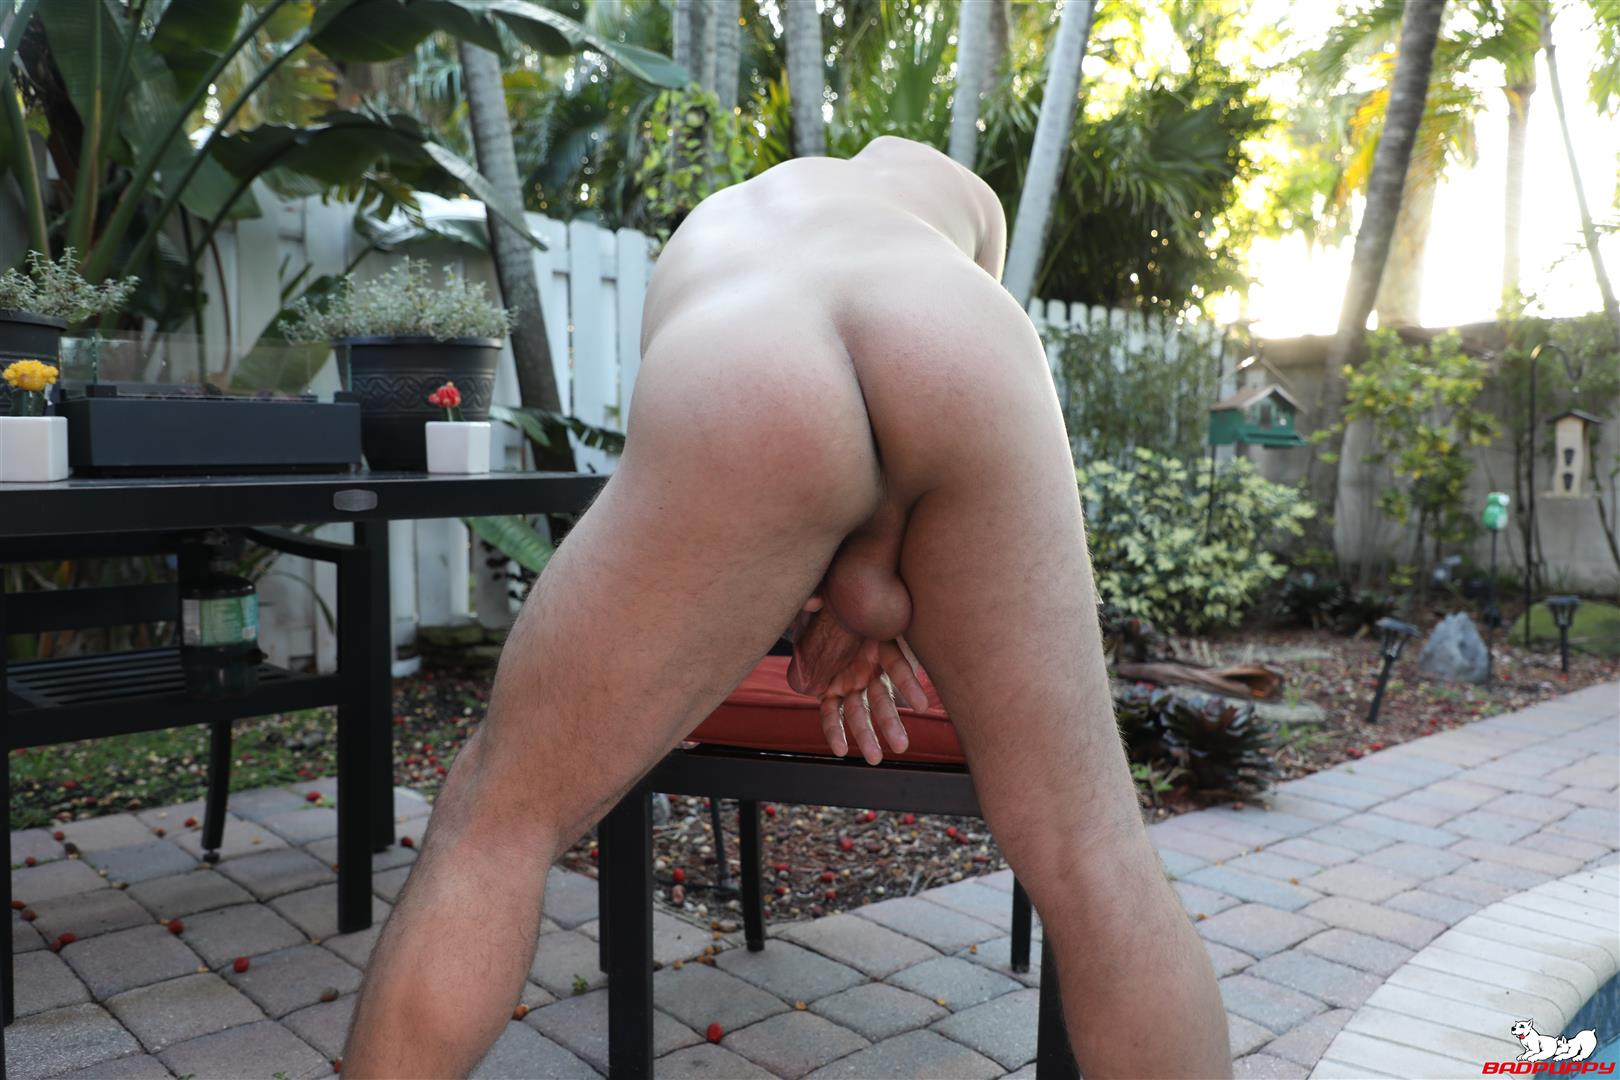 Badpuppy-Eddie-Danger-Thick-Boy-Stroking-His-Fat-Cock-Cum-Video-11 Thick Go-Go Boy Stokes His Hard Fat Cock Until He Cums